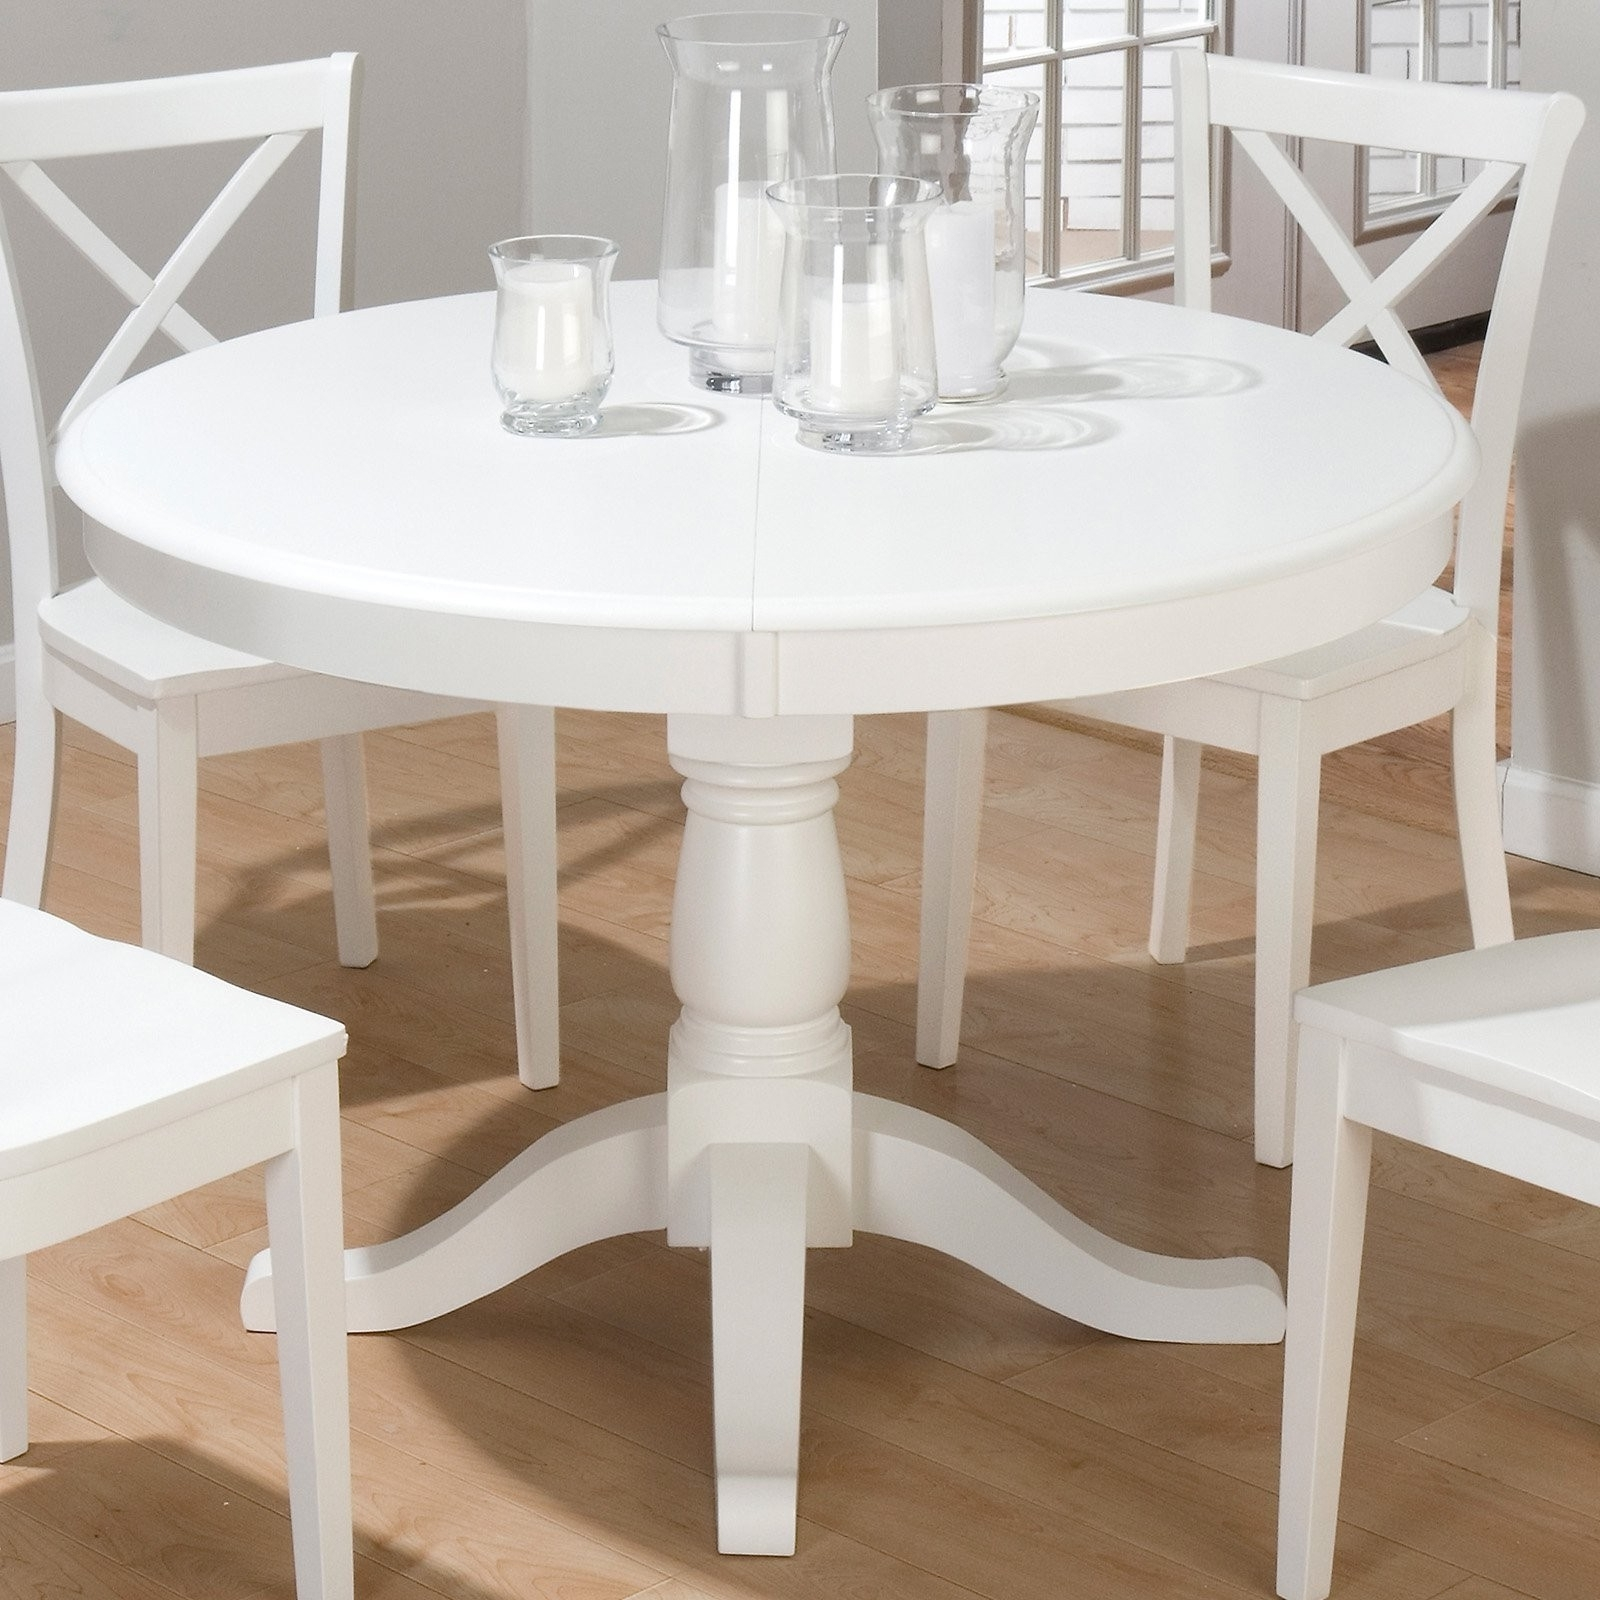 White Round Extendable Dining Tables Regarding Newest Extendable Dining Tables For Small Spaces Inspirational White Round (View 22 of 25)